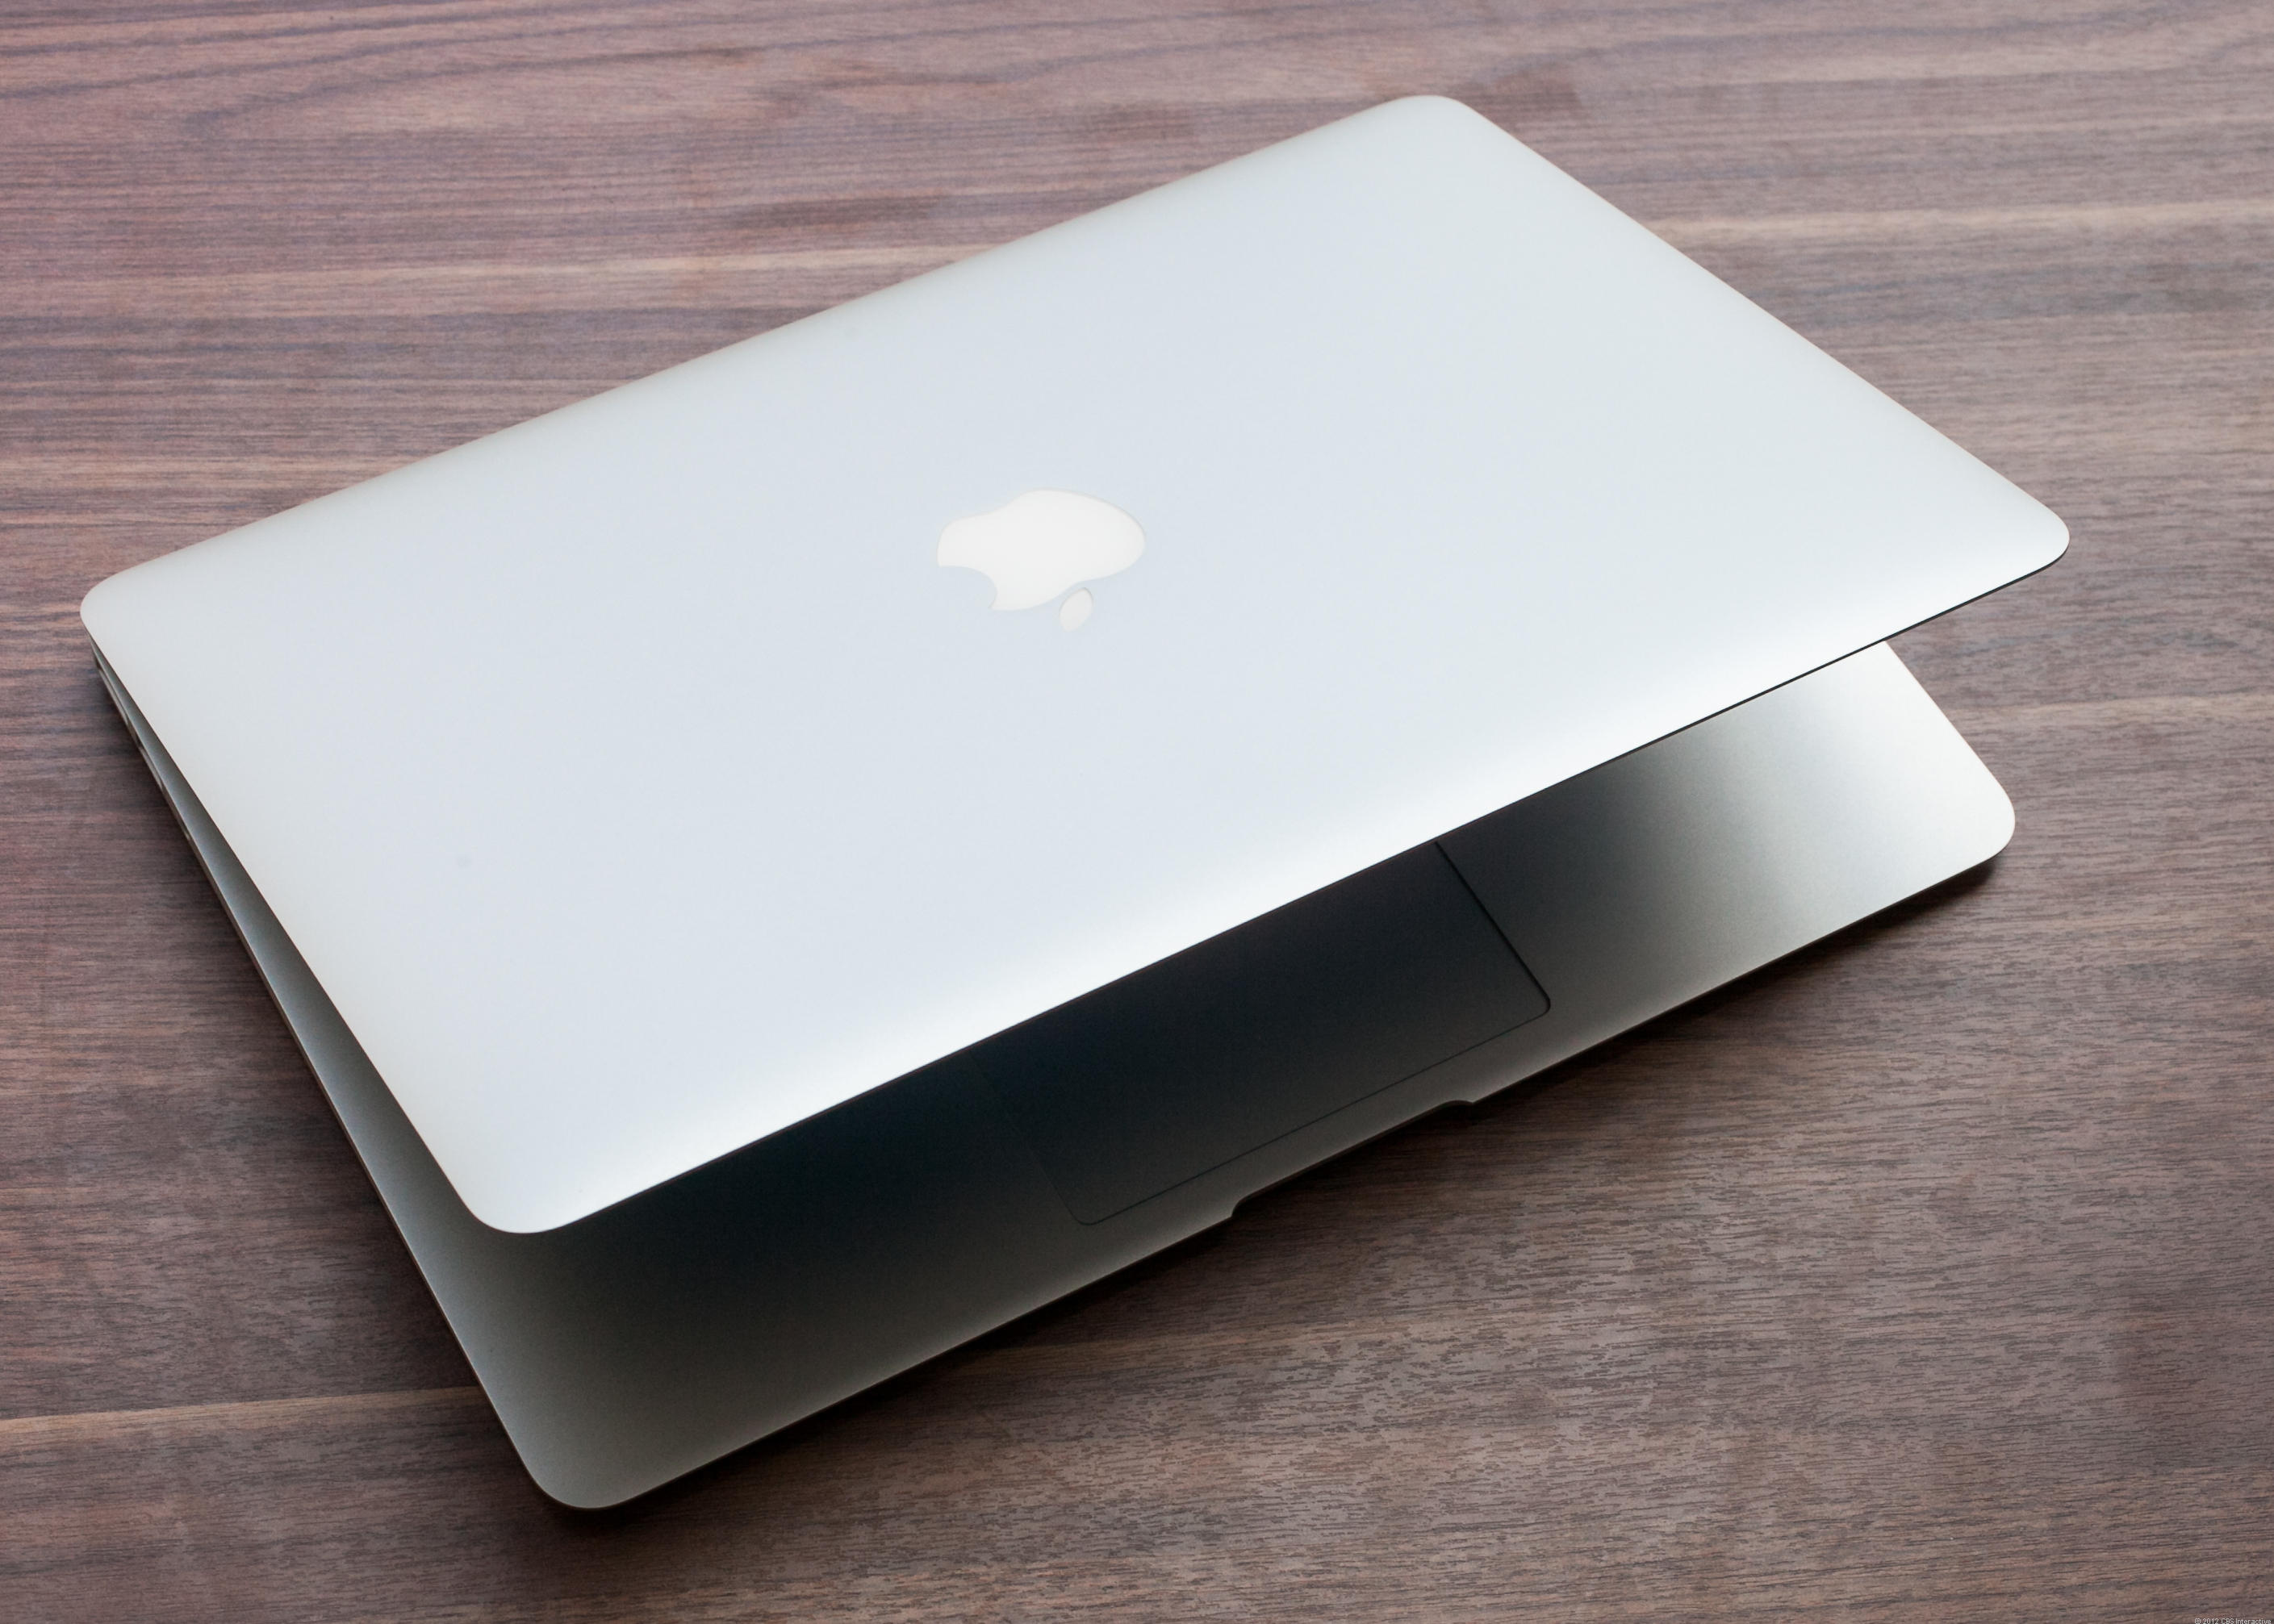 MacBook_Air_13-inch_35330106_15.jpg